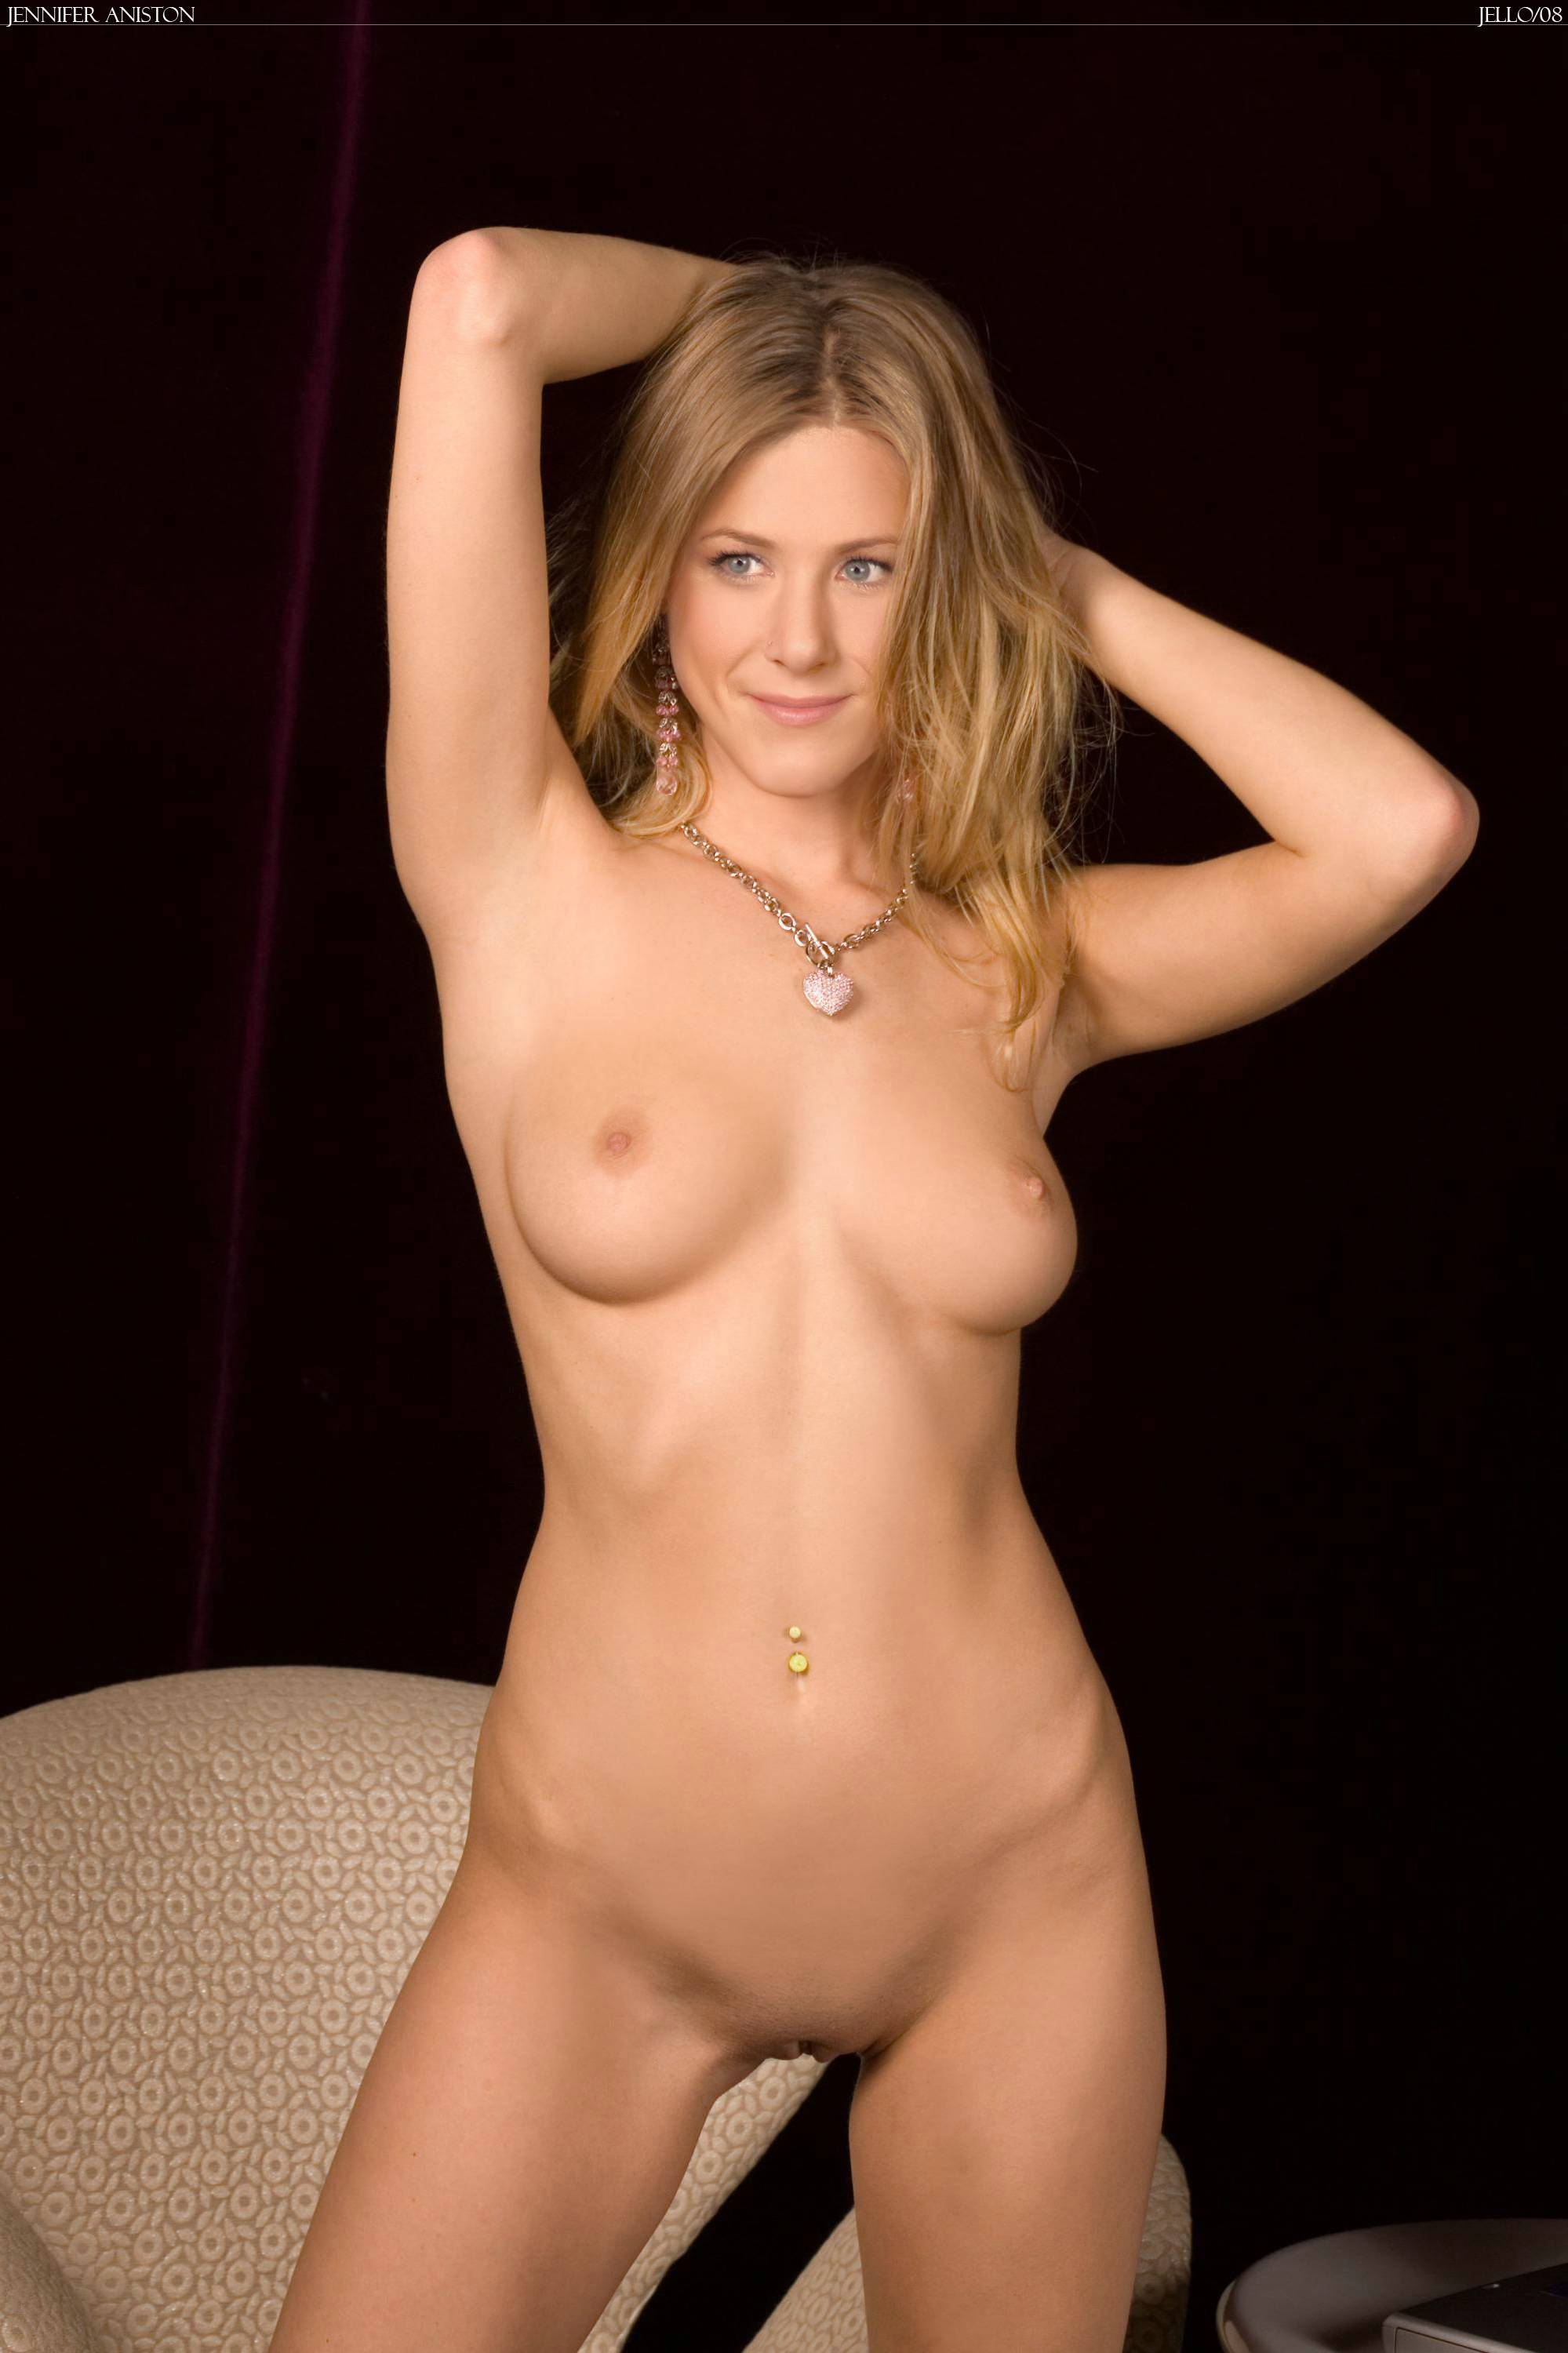 jennifer-aniston-best-naked-fakes